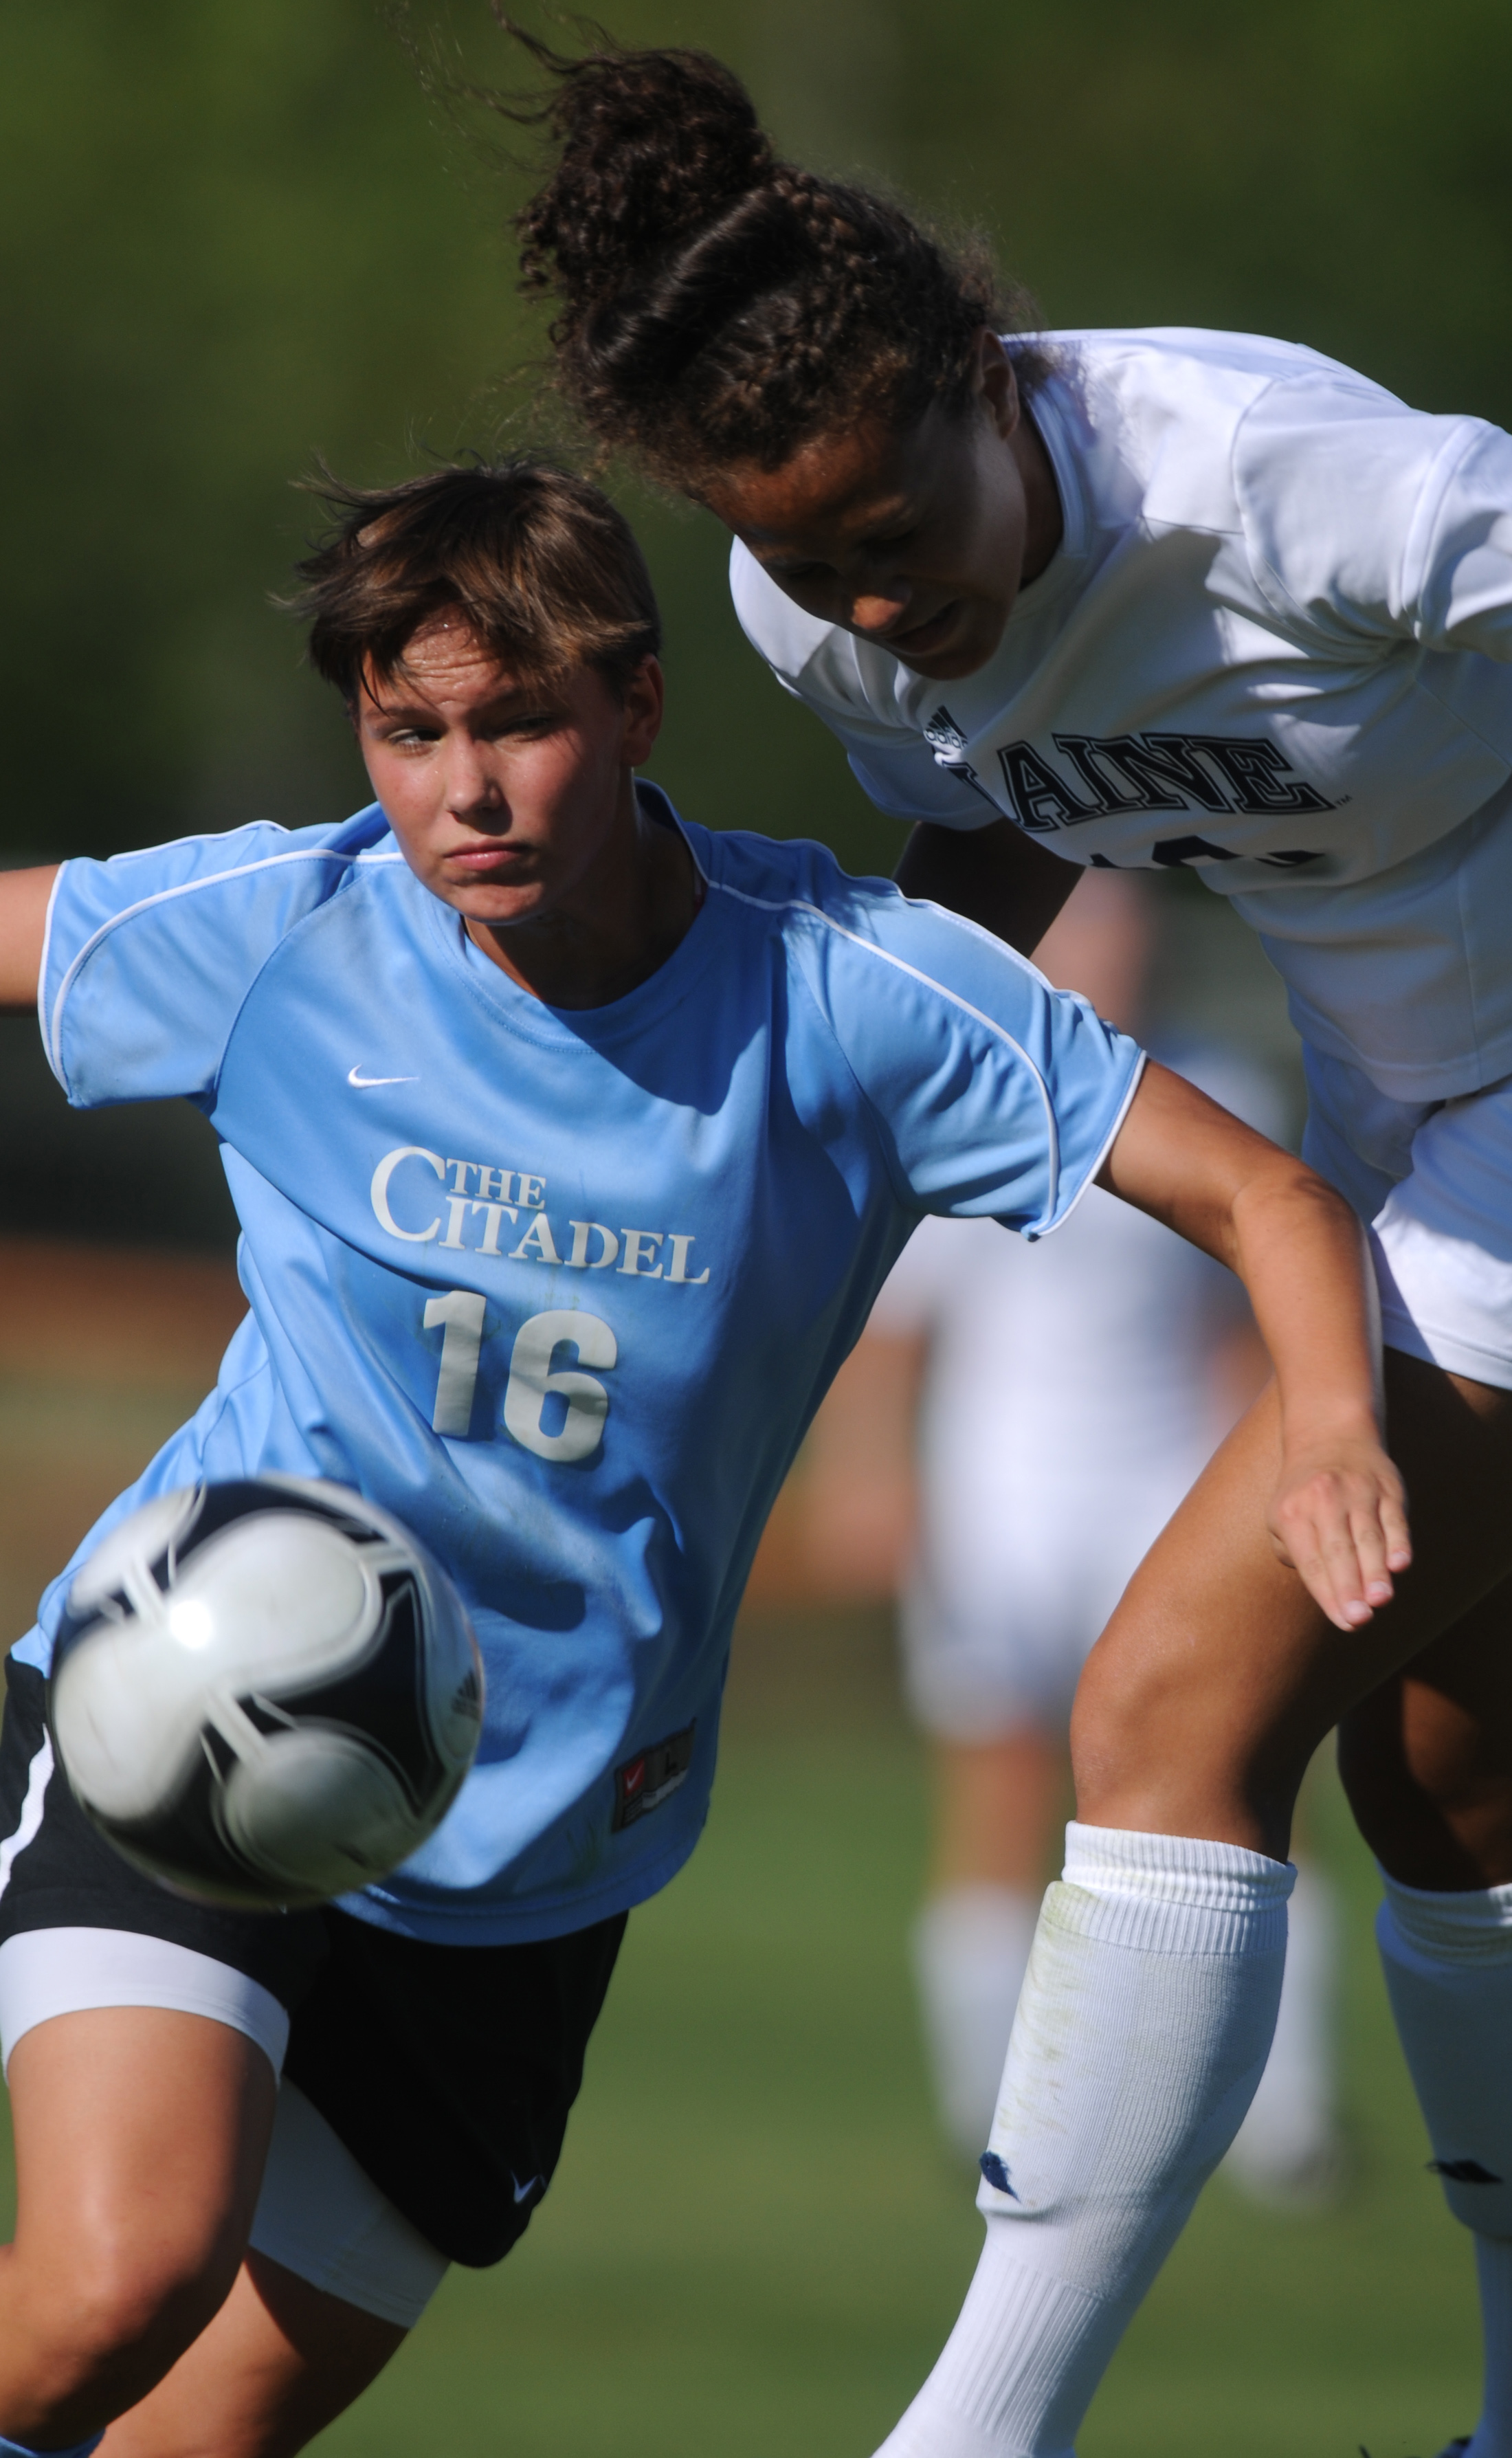 UMaine's Jordan Charlene Achille and Citadel's Taylor Darling fight for control of the ball during first-half action at Orono on Friday, Aug. 24, 2012.